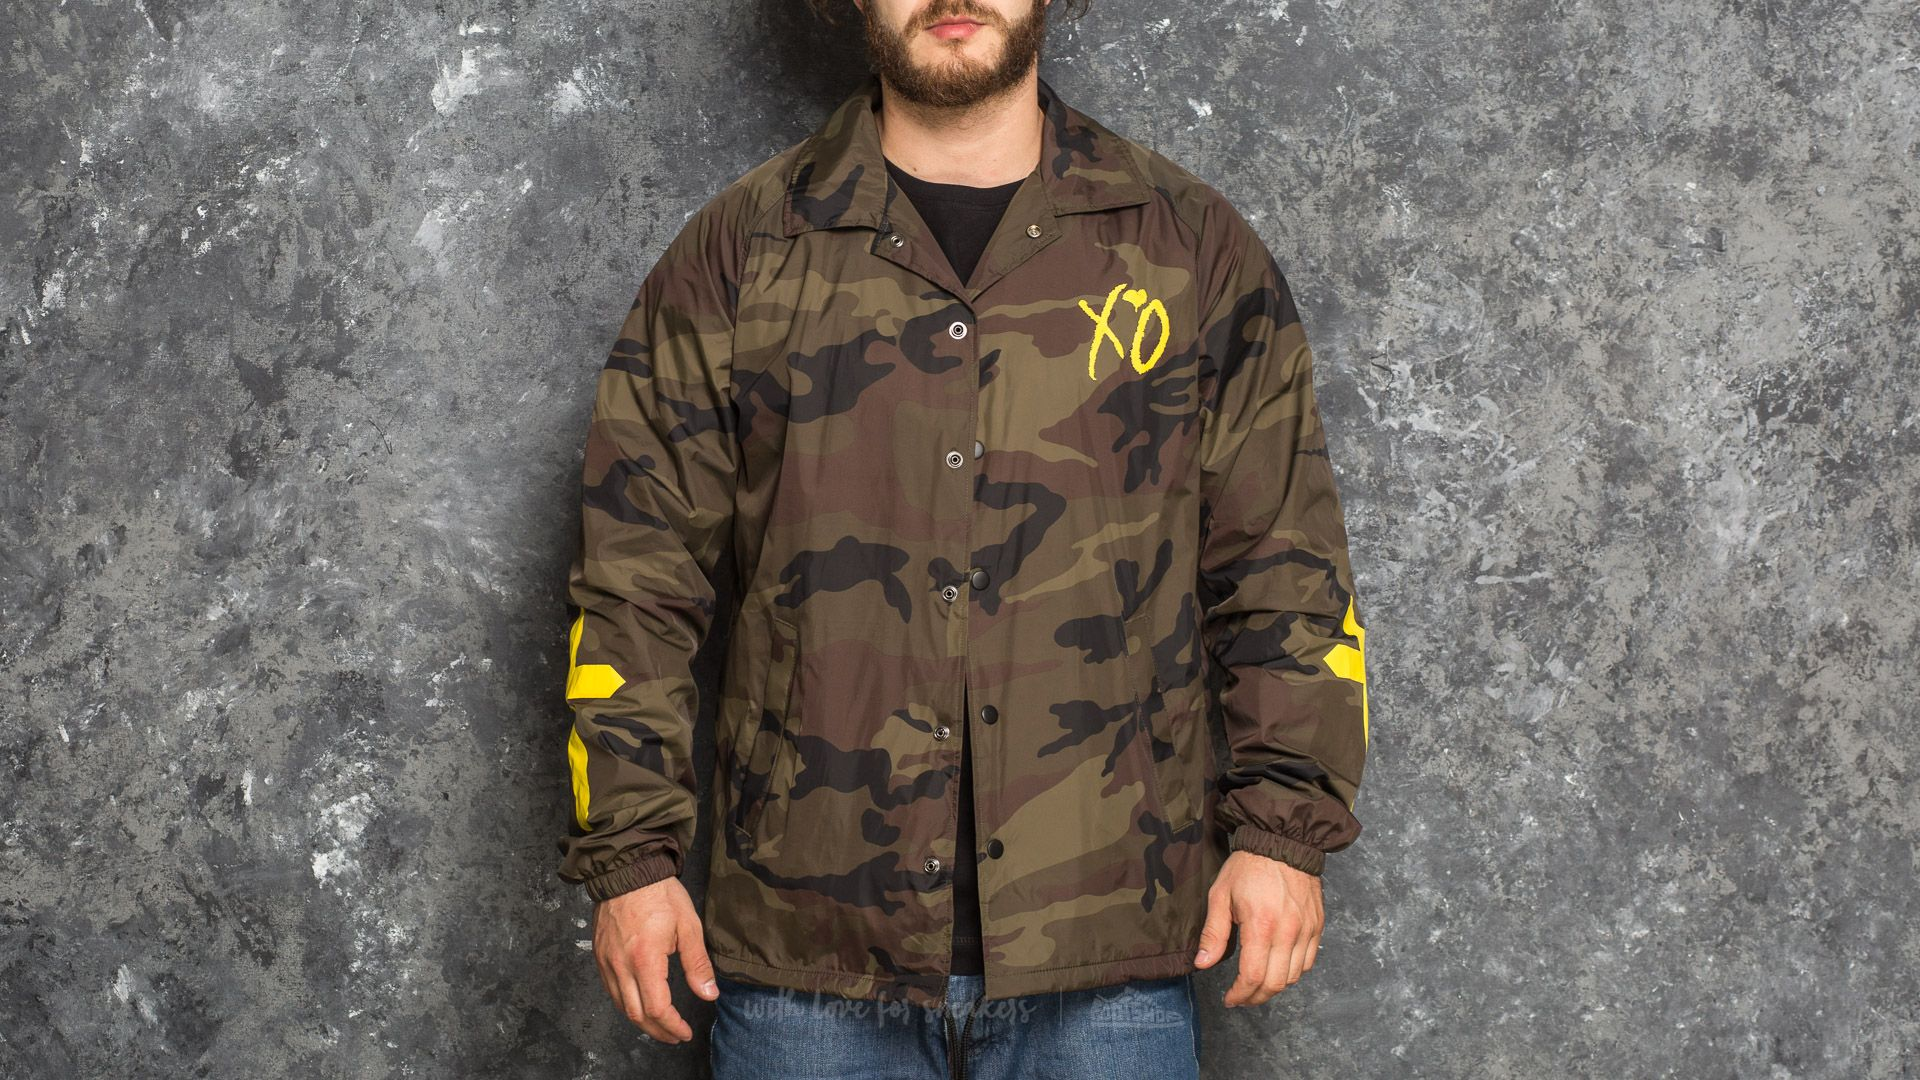 The Weeknd XO Only Coach Jacket Camo - 17517